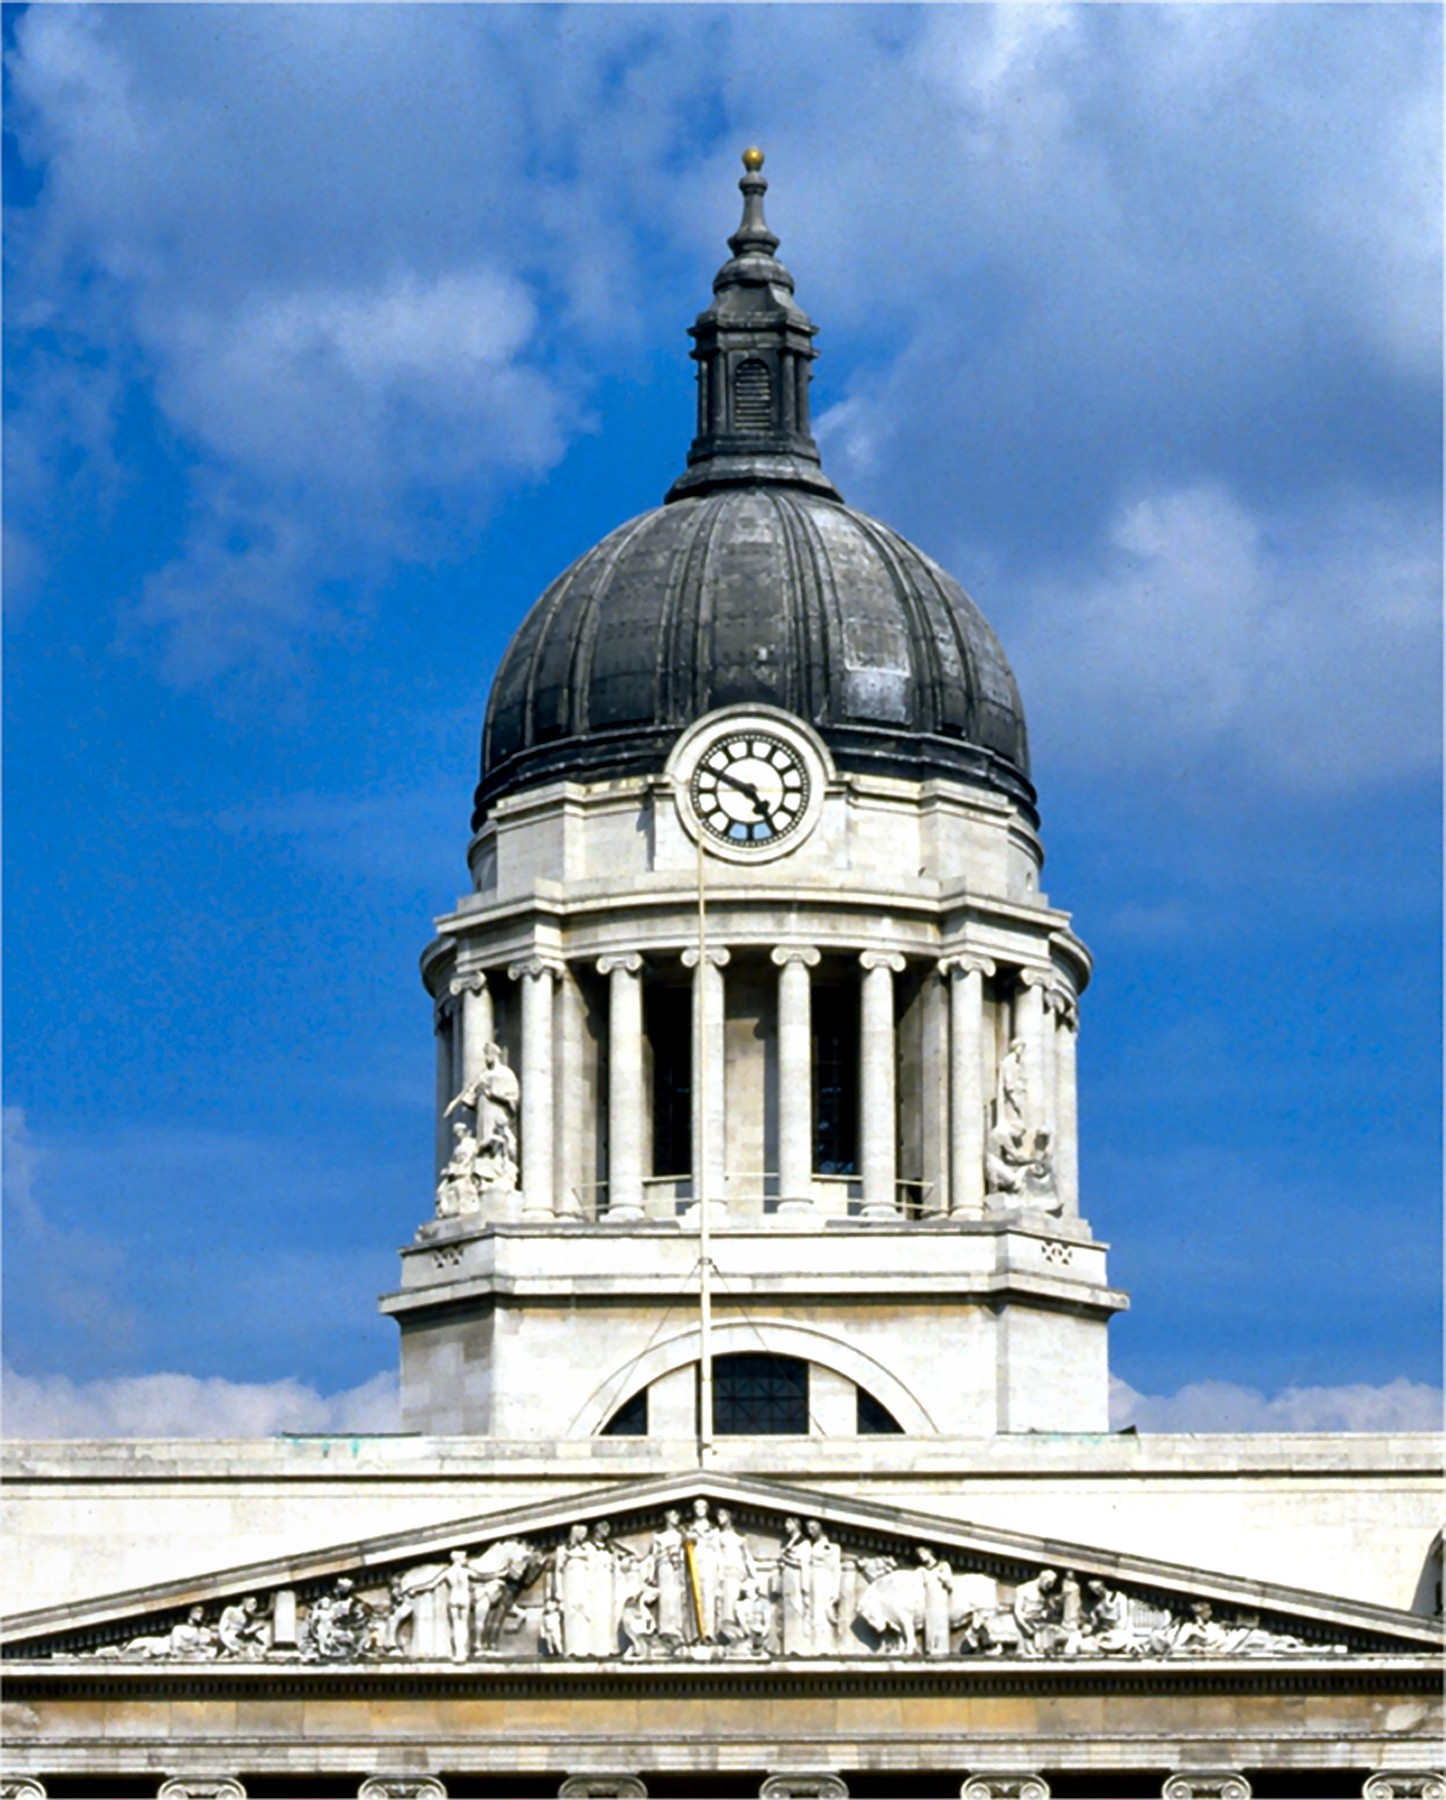 Council House dome